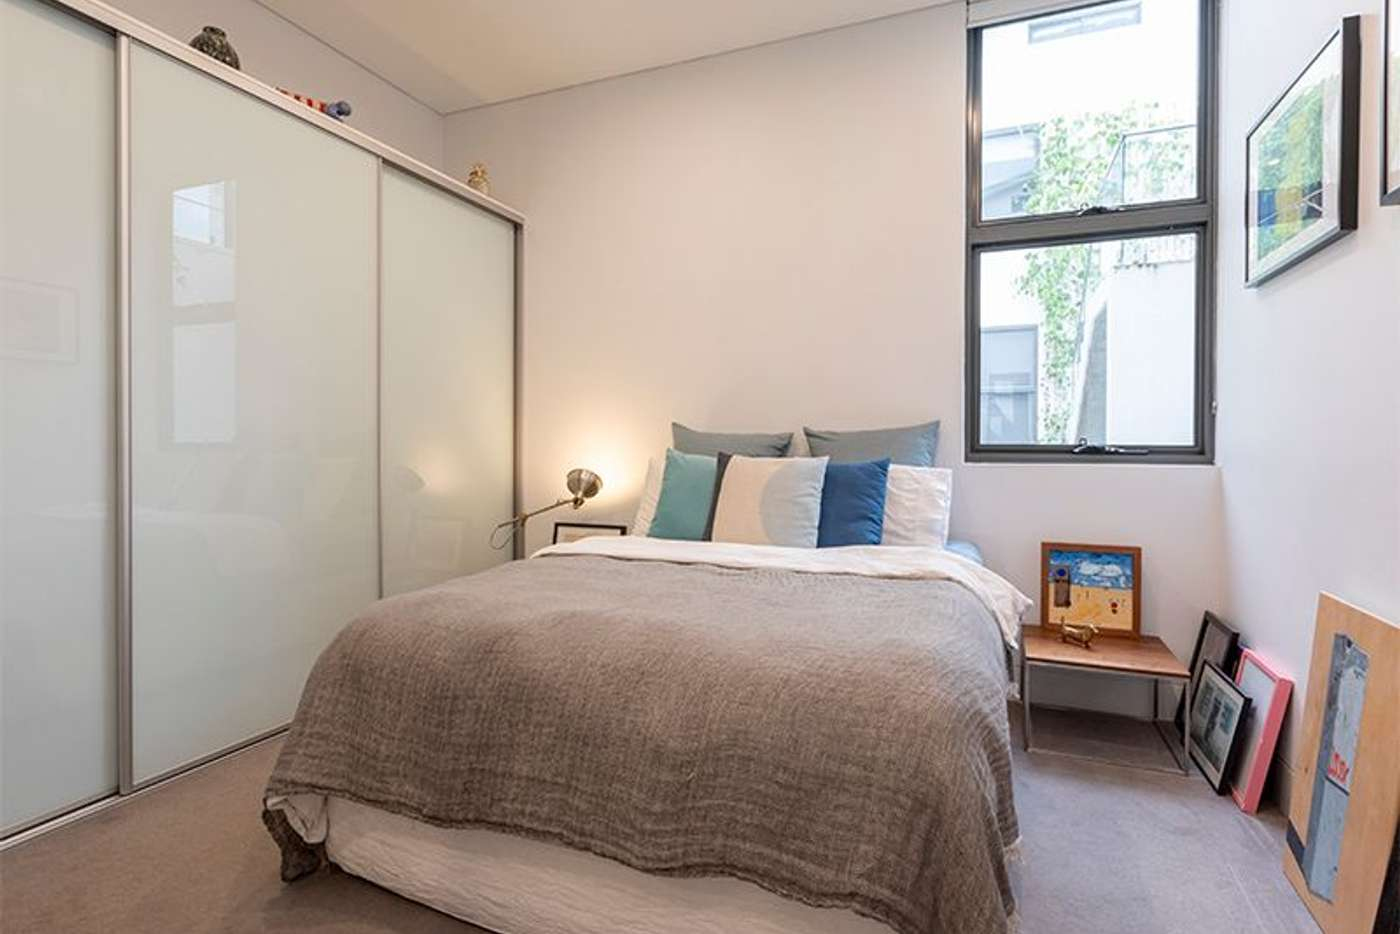 Sixth view of Homely apartment listing, 14/52 Pitt Street, Redfern NSW 2016